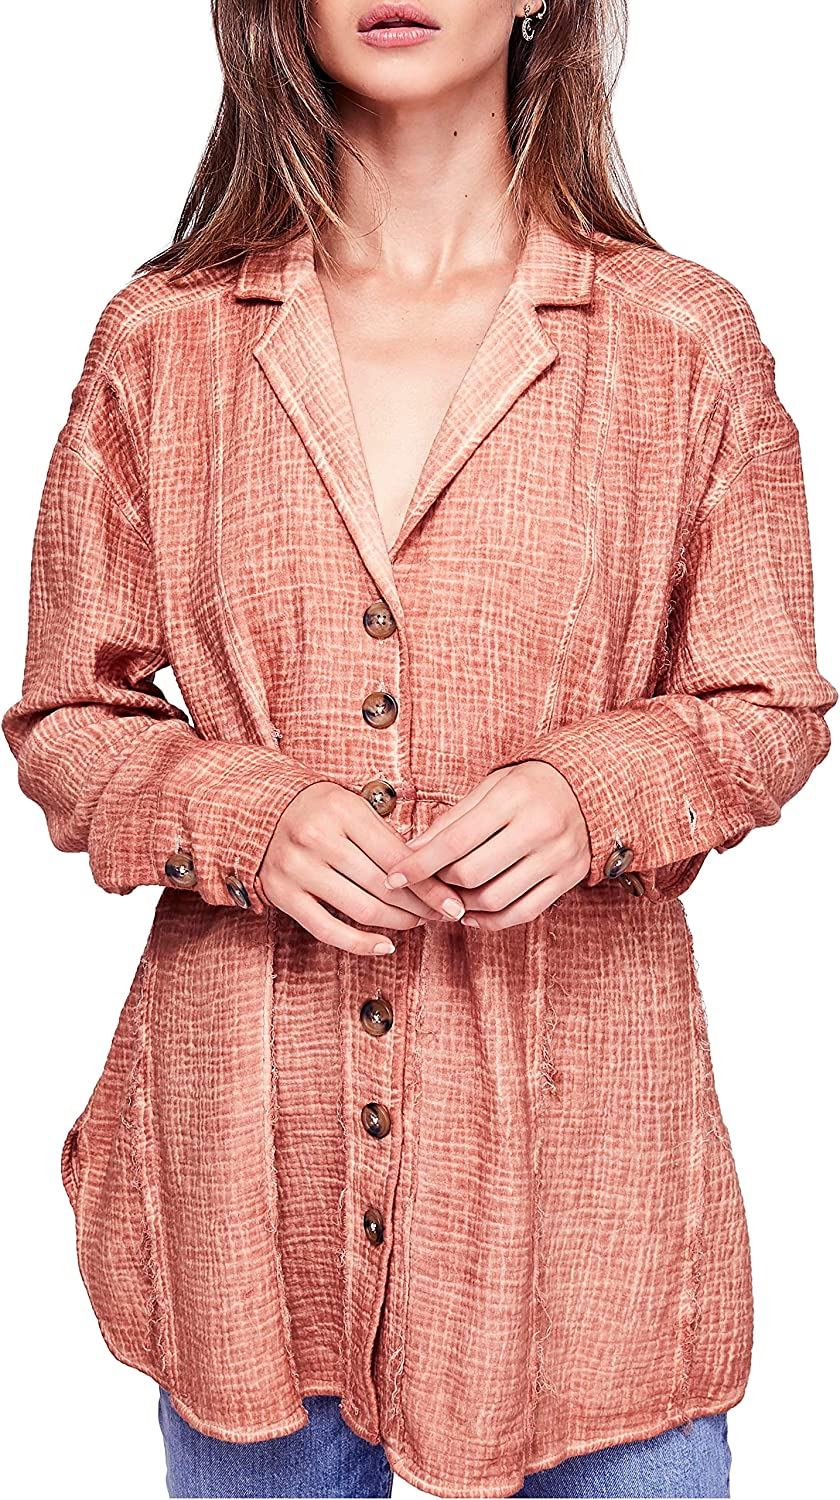 Free People All About The Feels Buttondown Top XS Peach